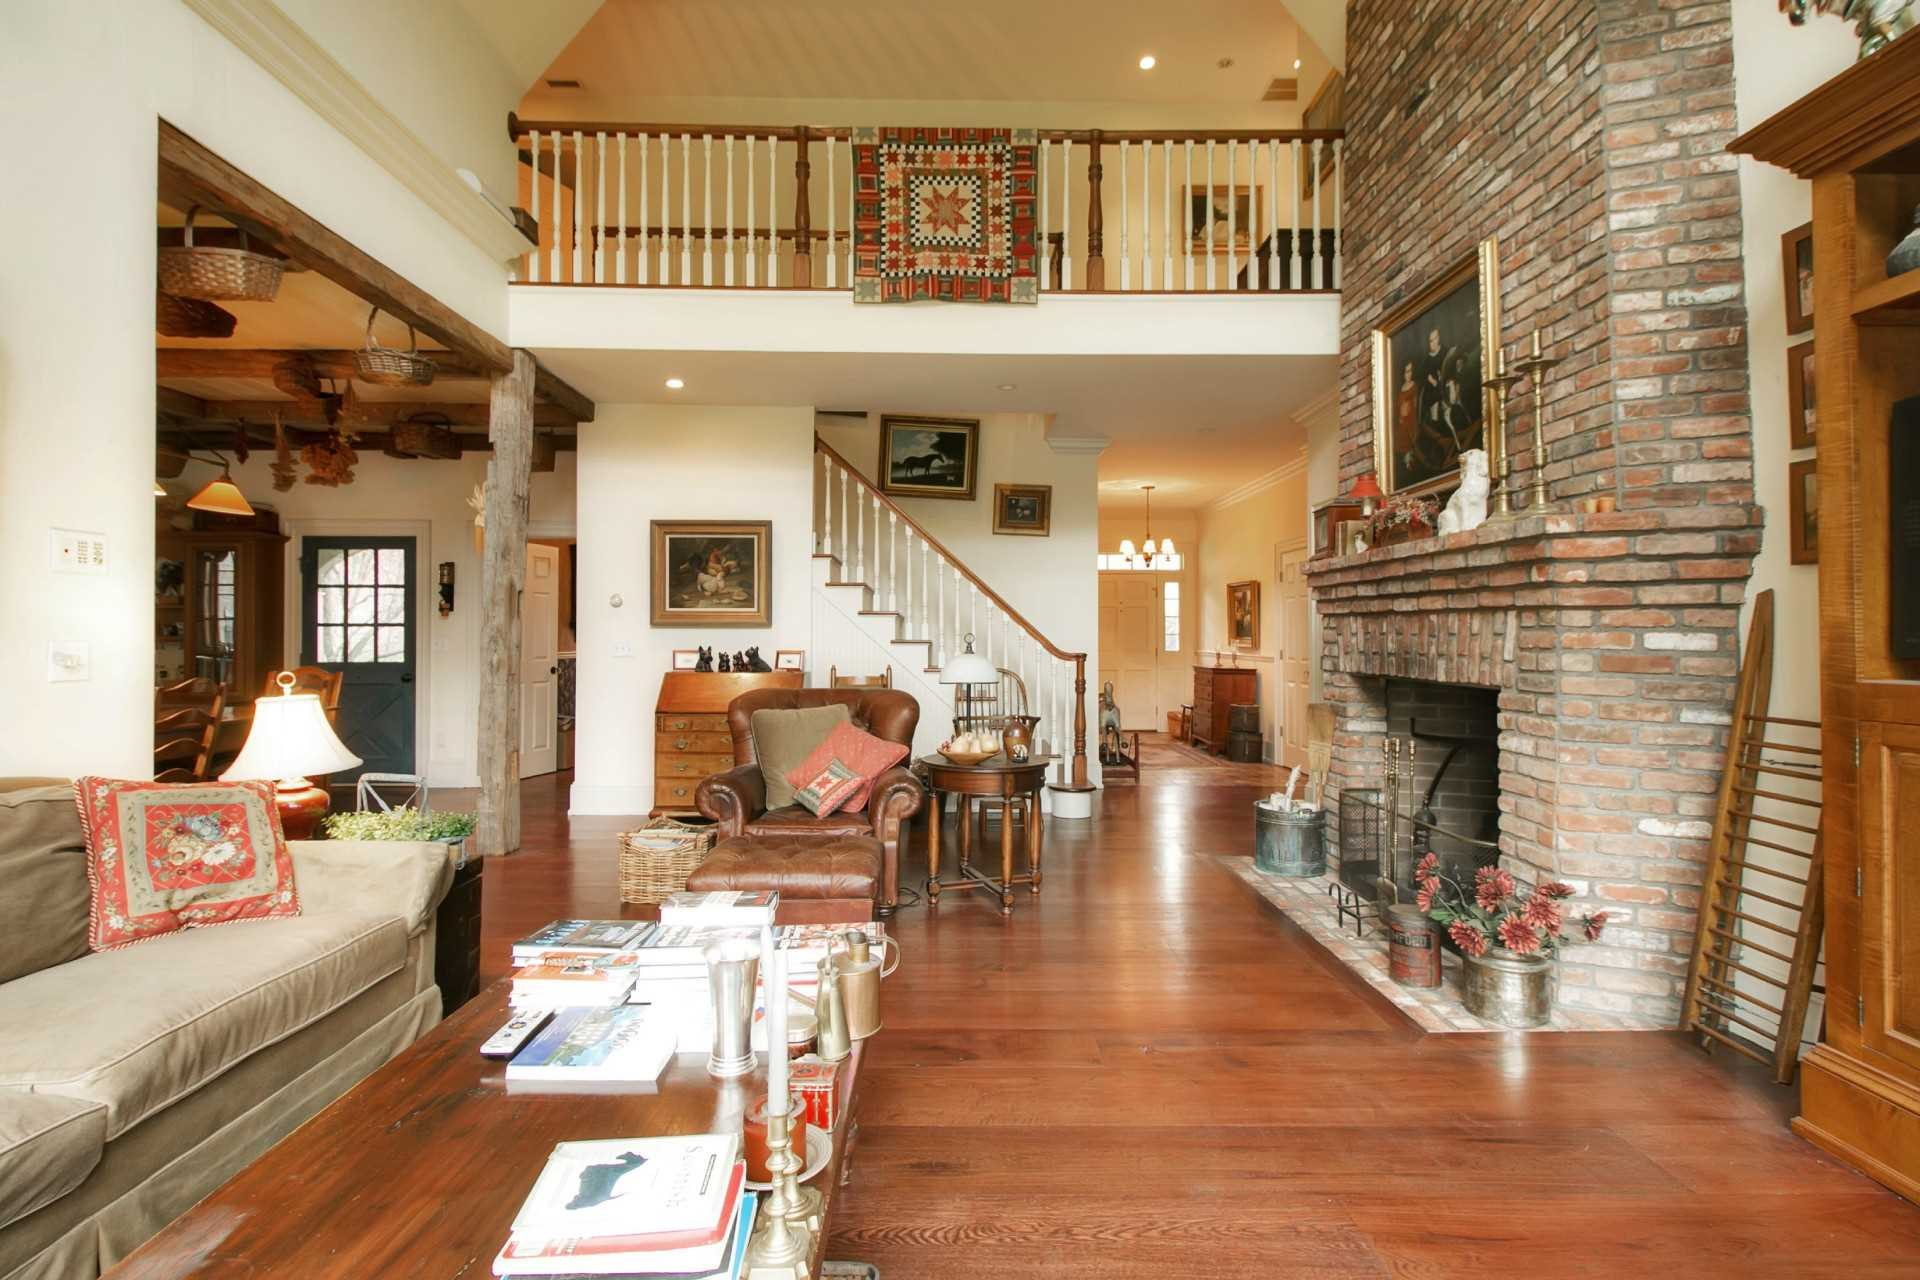 Additional photo for property listing at 10 COX Road 10 COX Road Pawling, New York 12564 United States